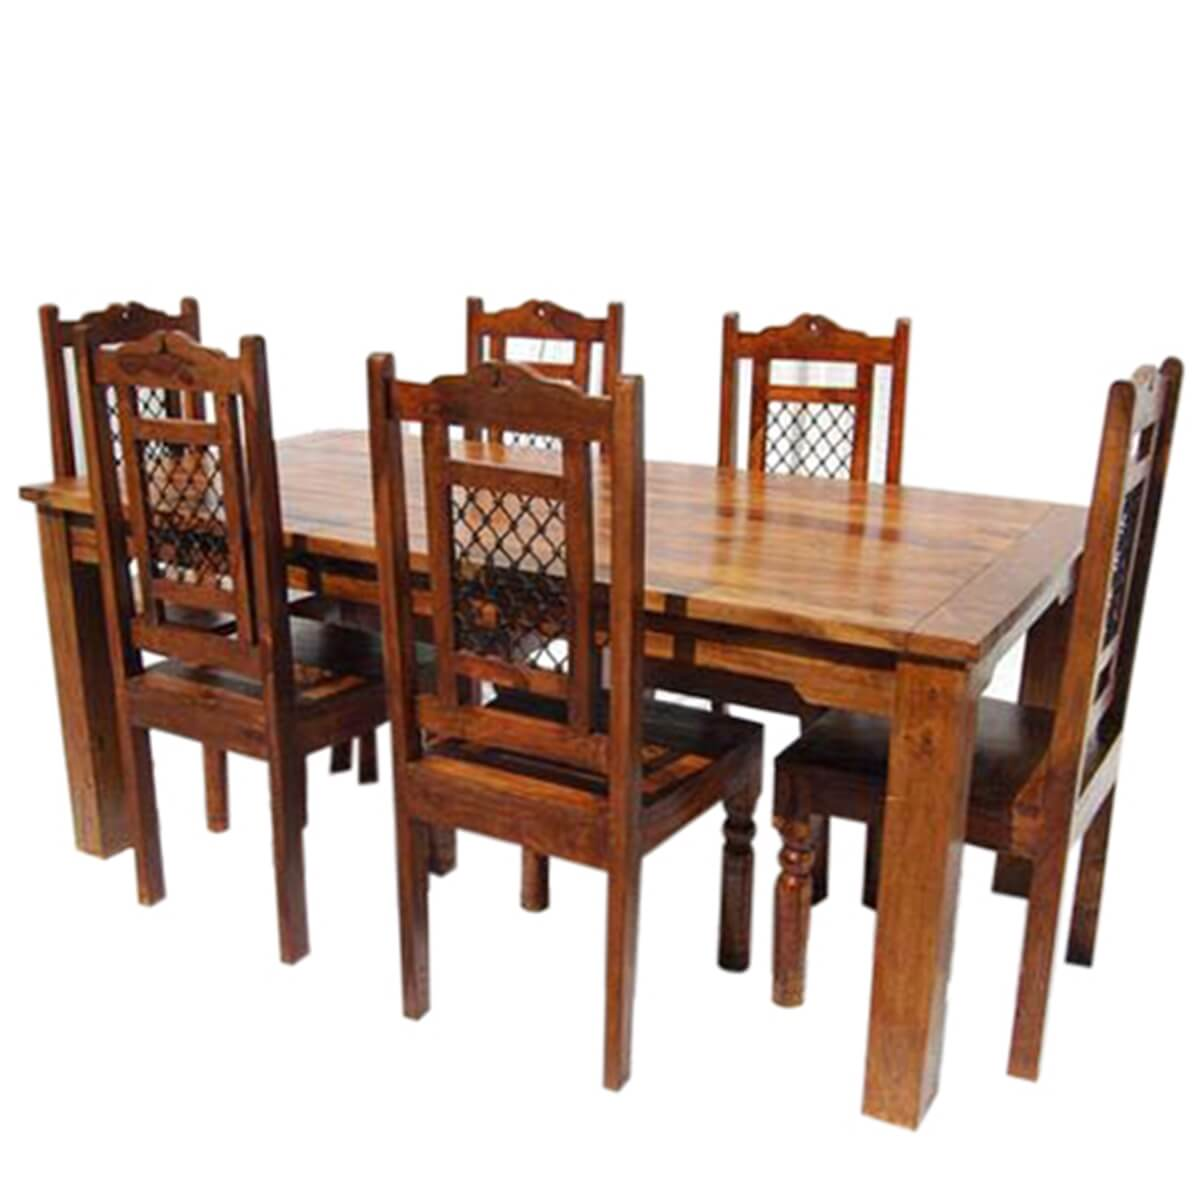 Farmhouse Dining Table And Chairs Swiss Alps Solid Wood 7pc Farmhouse Dining Table And Chair Set